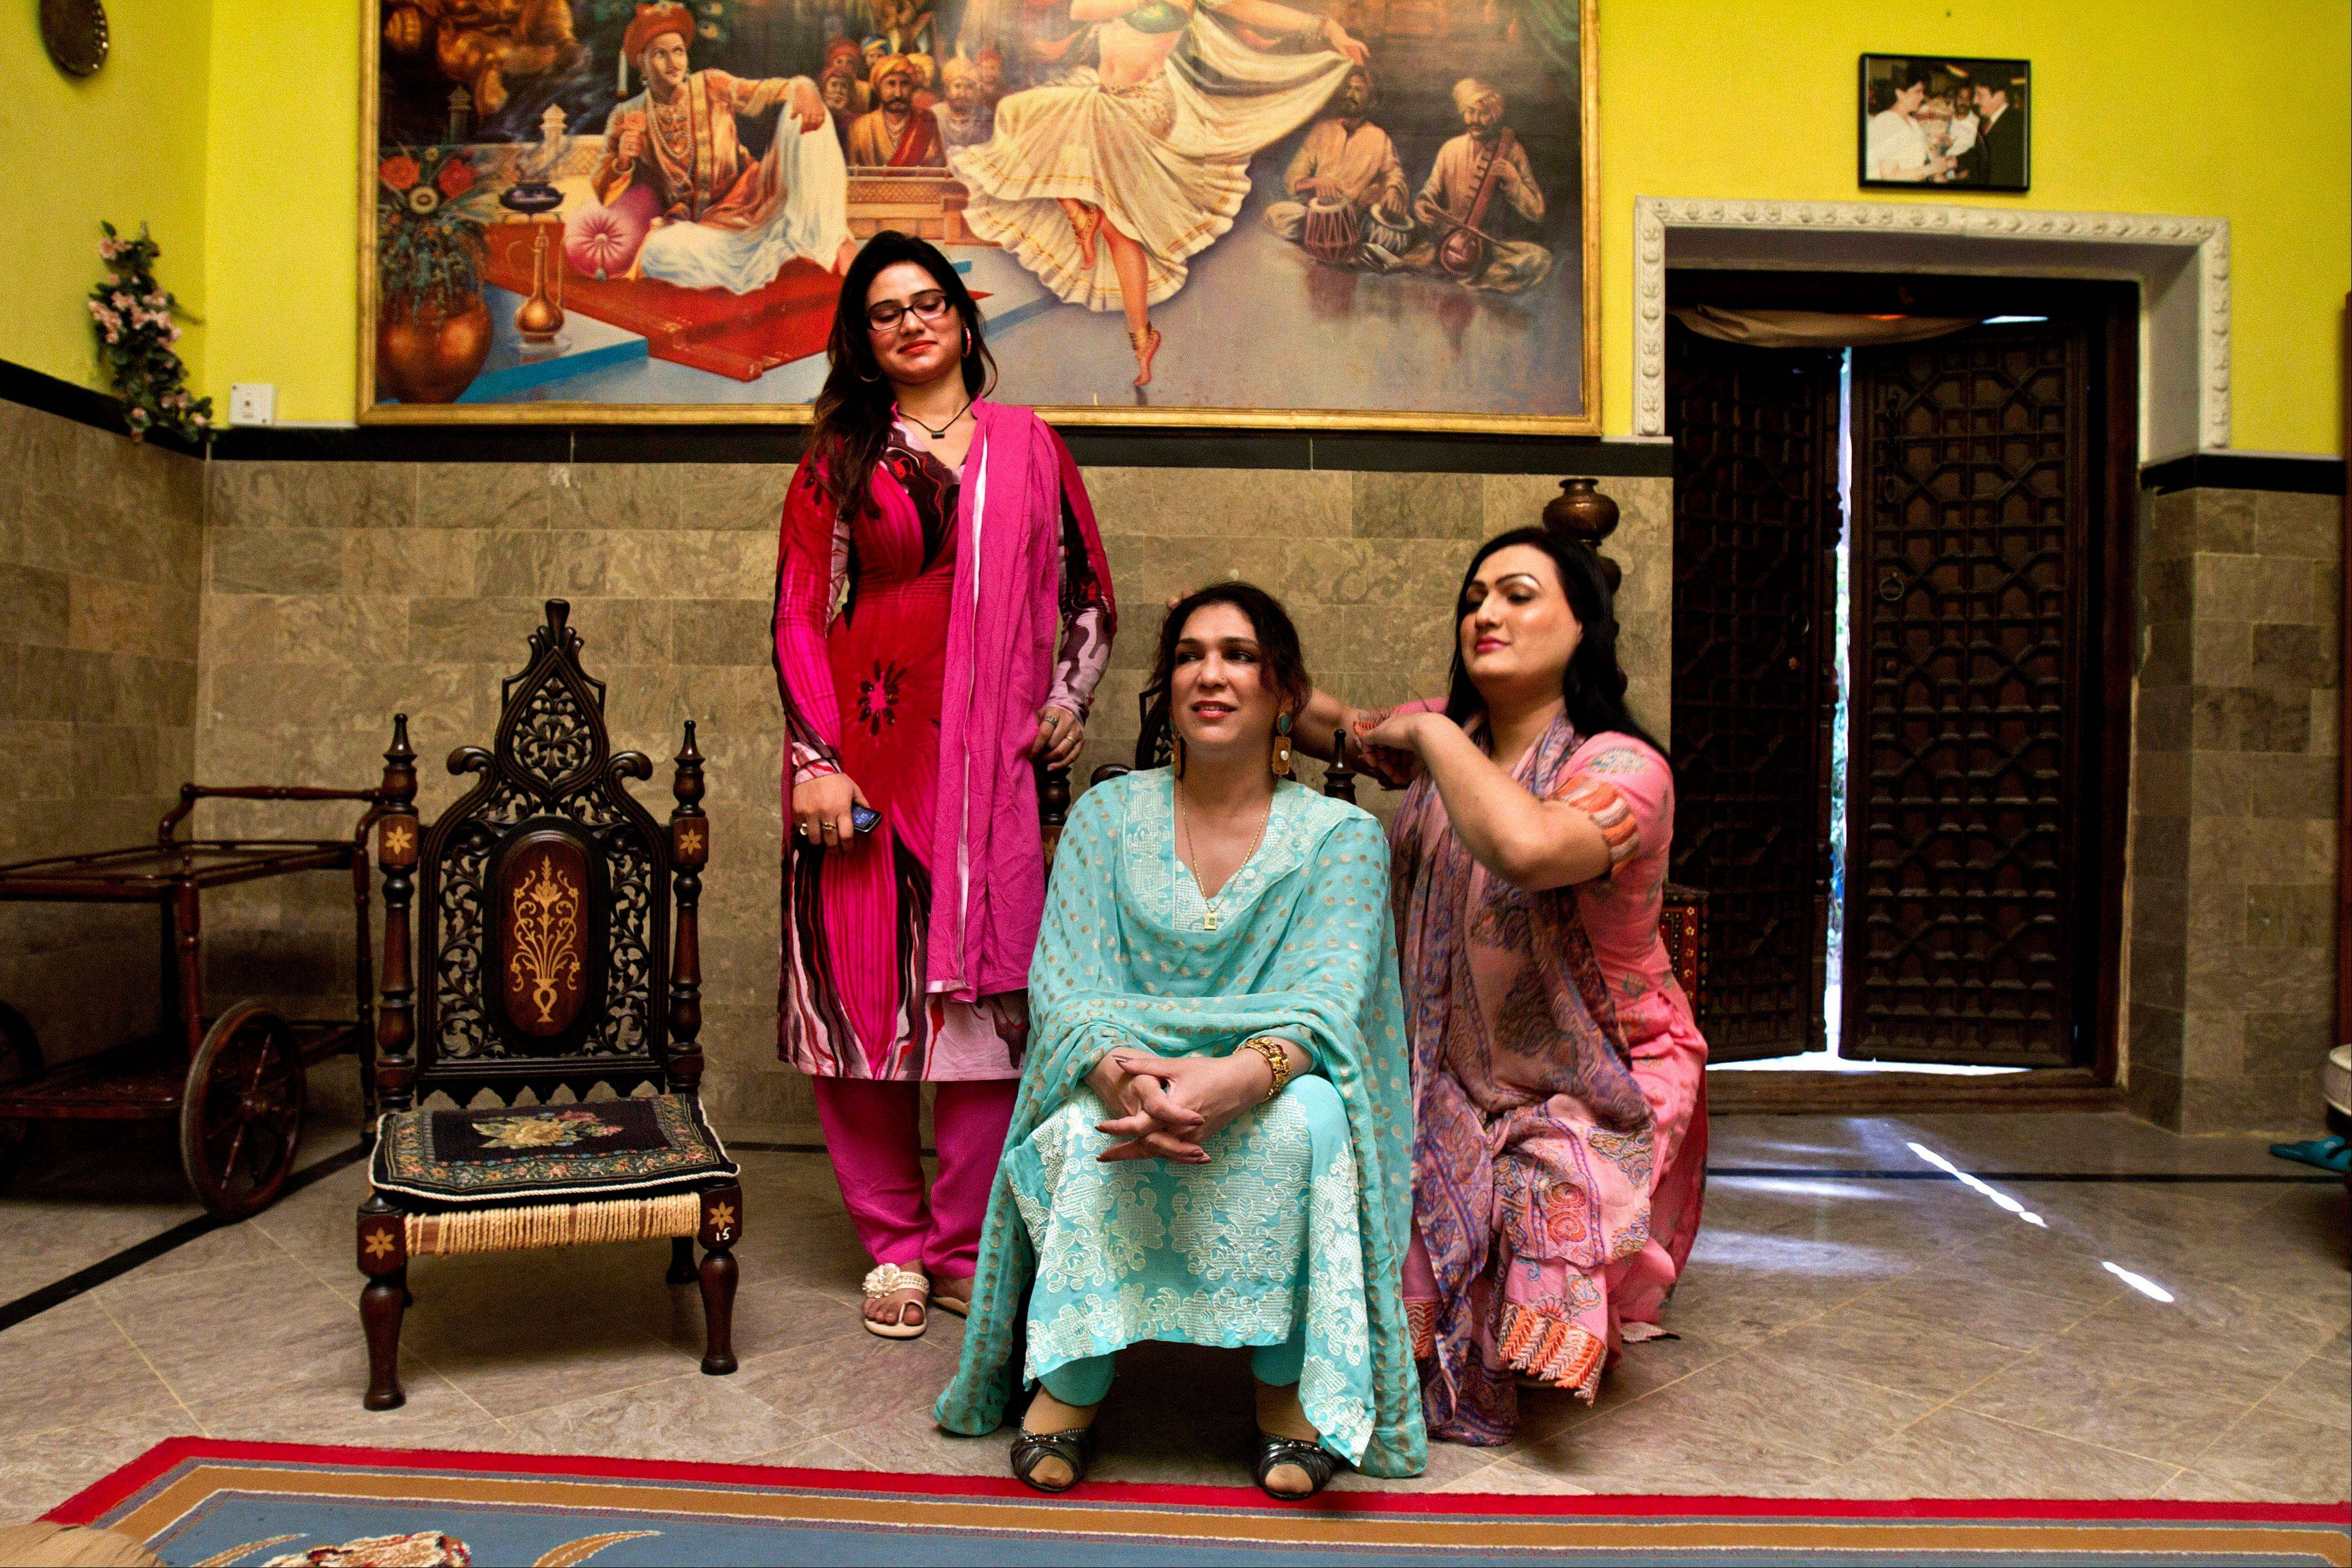 Pakistani transgender women Sonia, right, and Mahim, left, chat with their community head Almas Bobby, 42, center, at Almas' home in Rawalpindi, Pakistan.